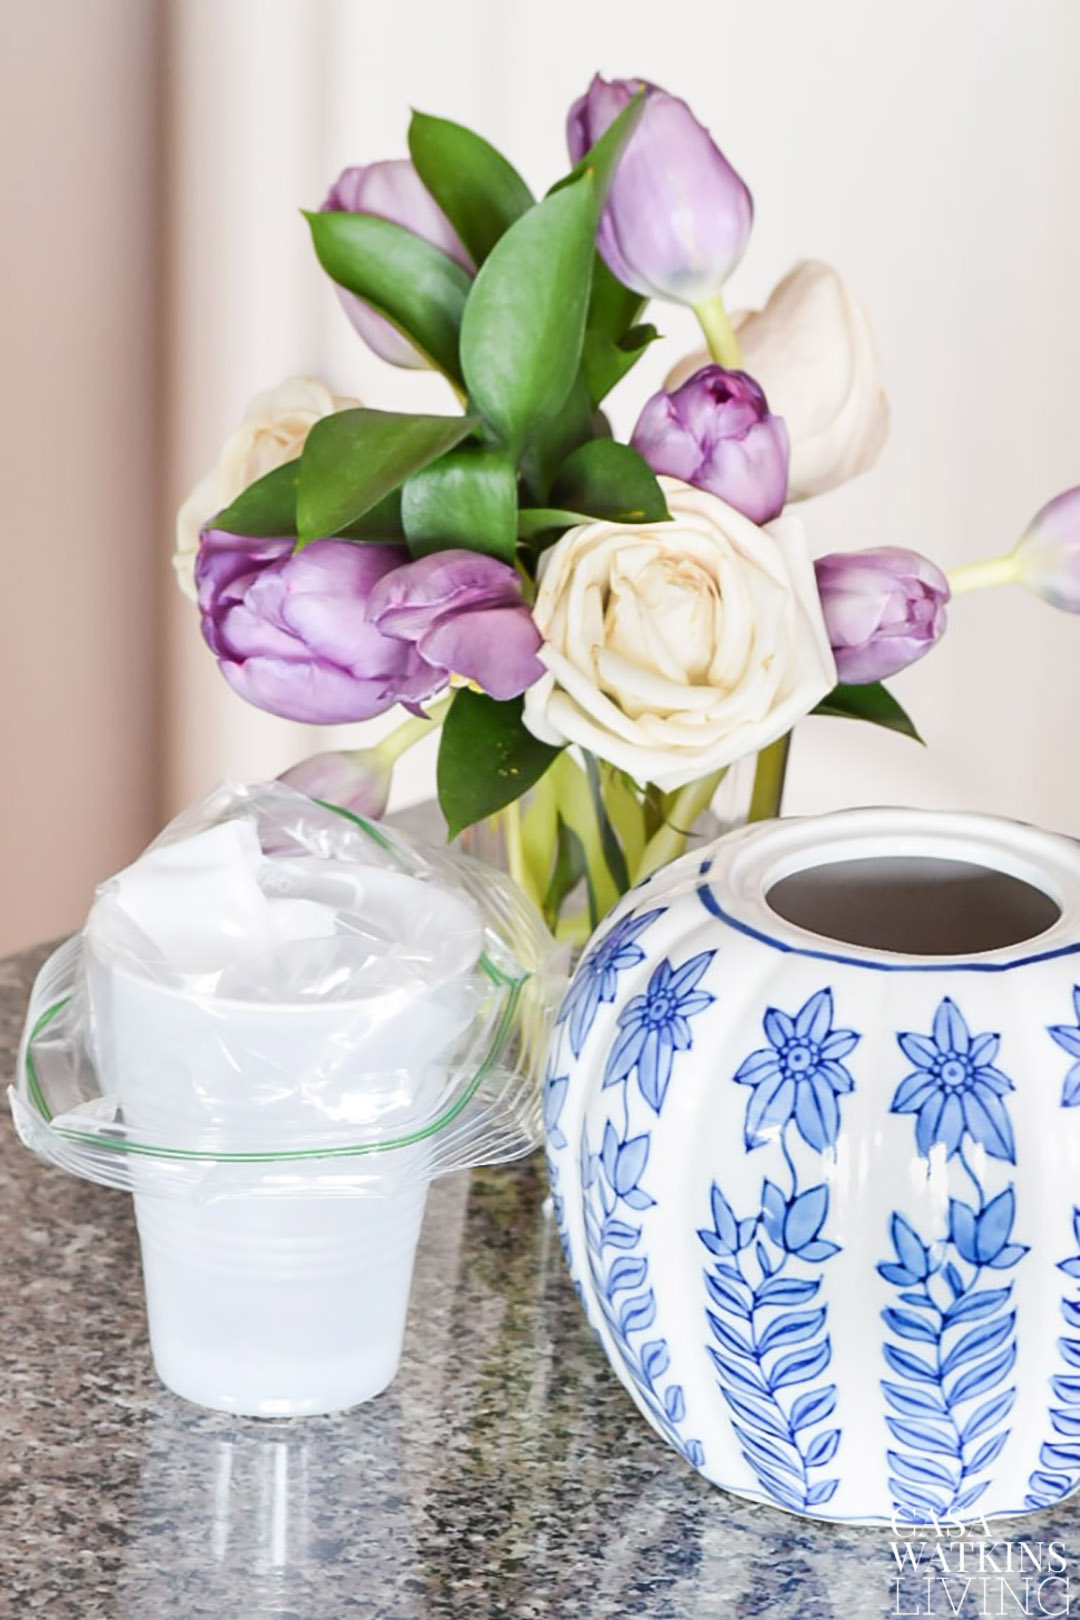 line plastic cup with plastic baggie to use as a inner vase in ceramic jars